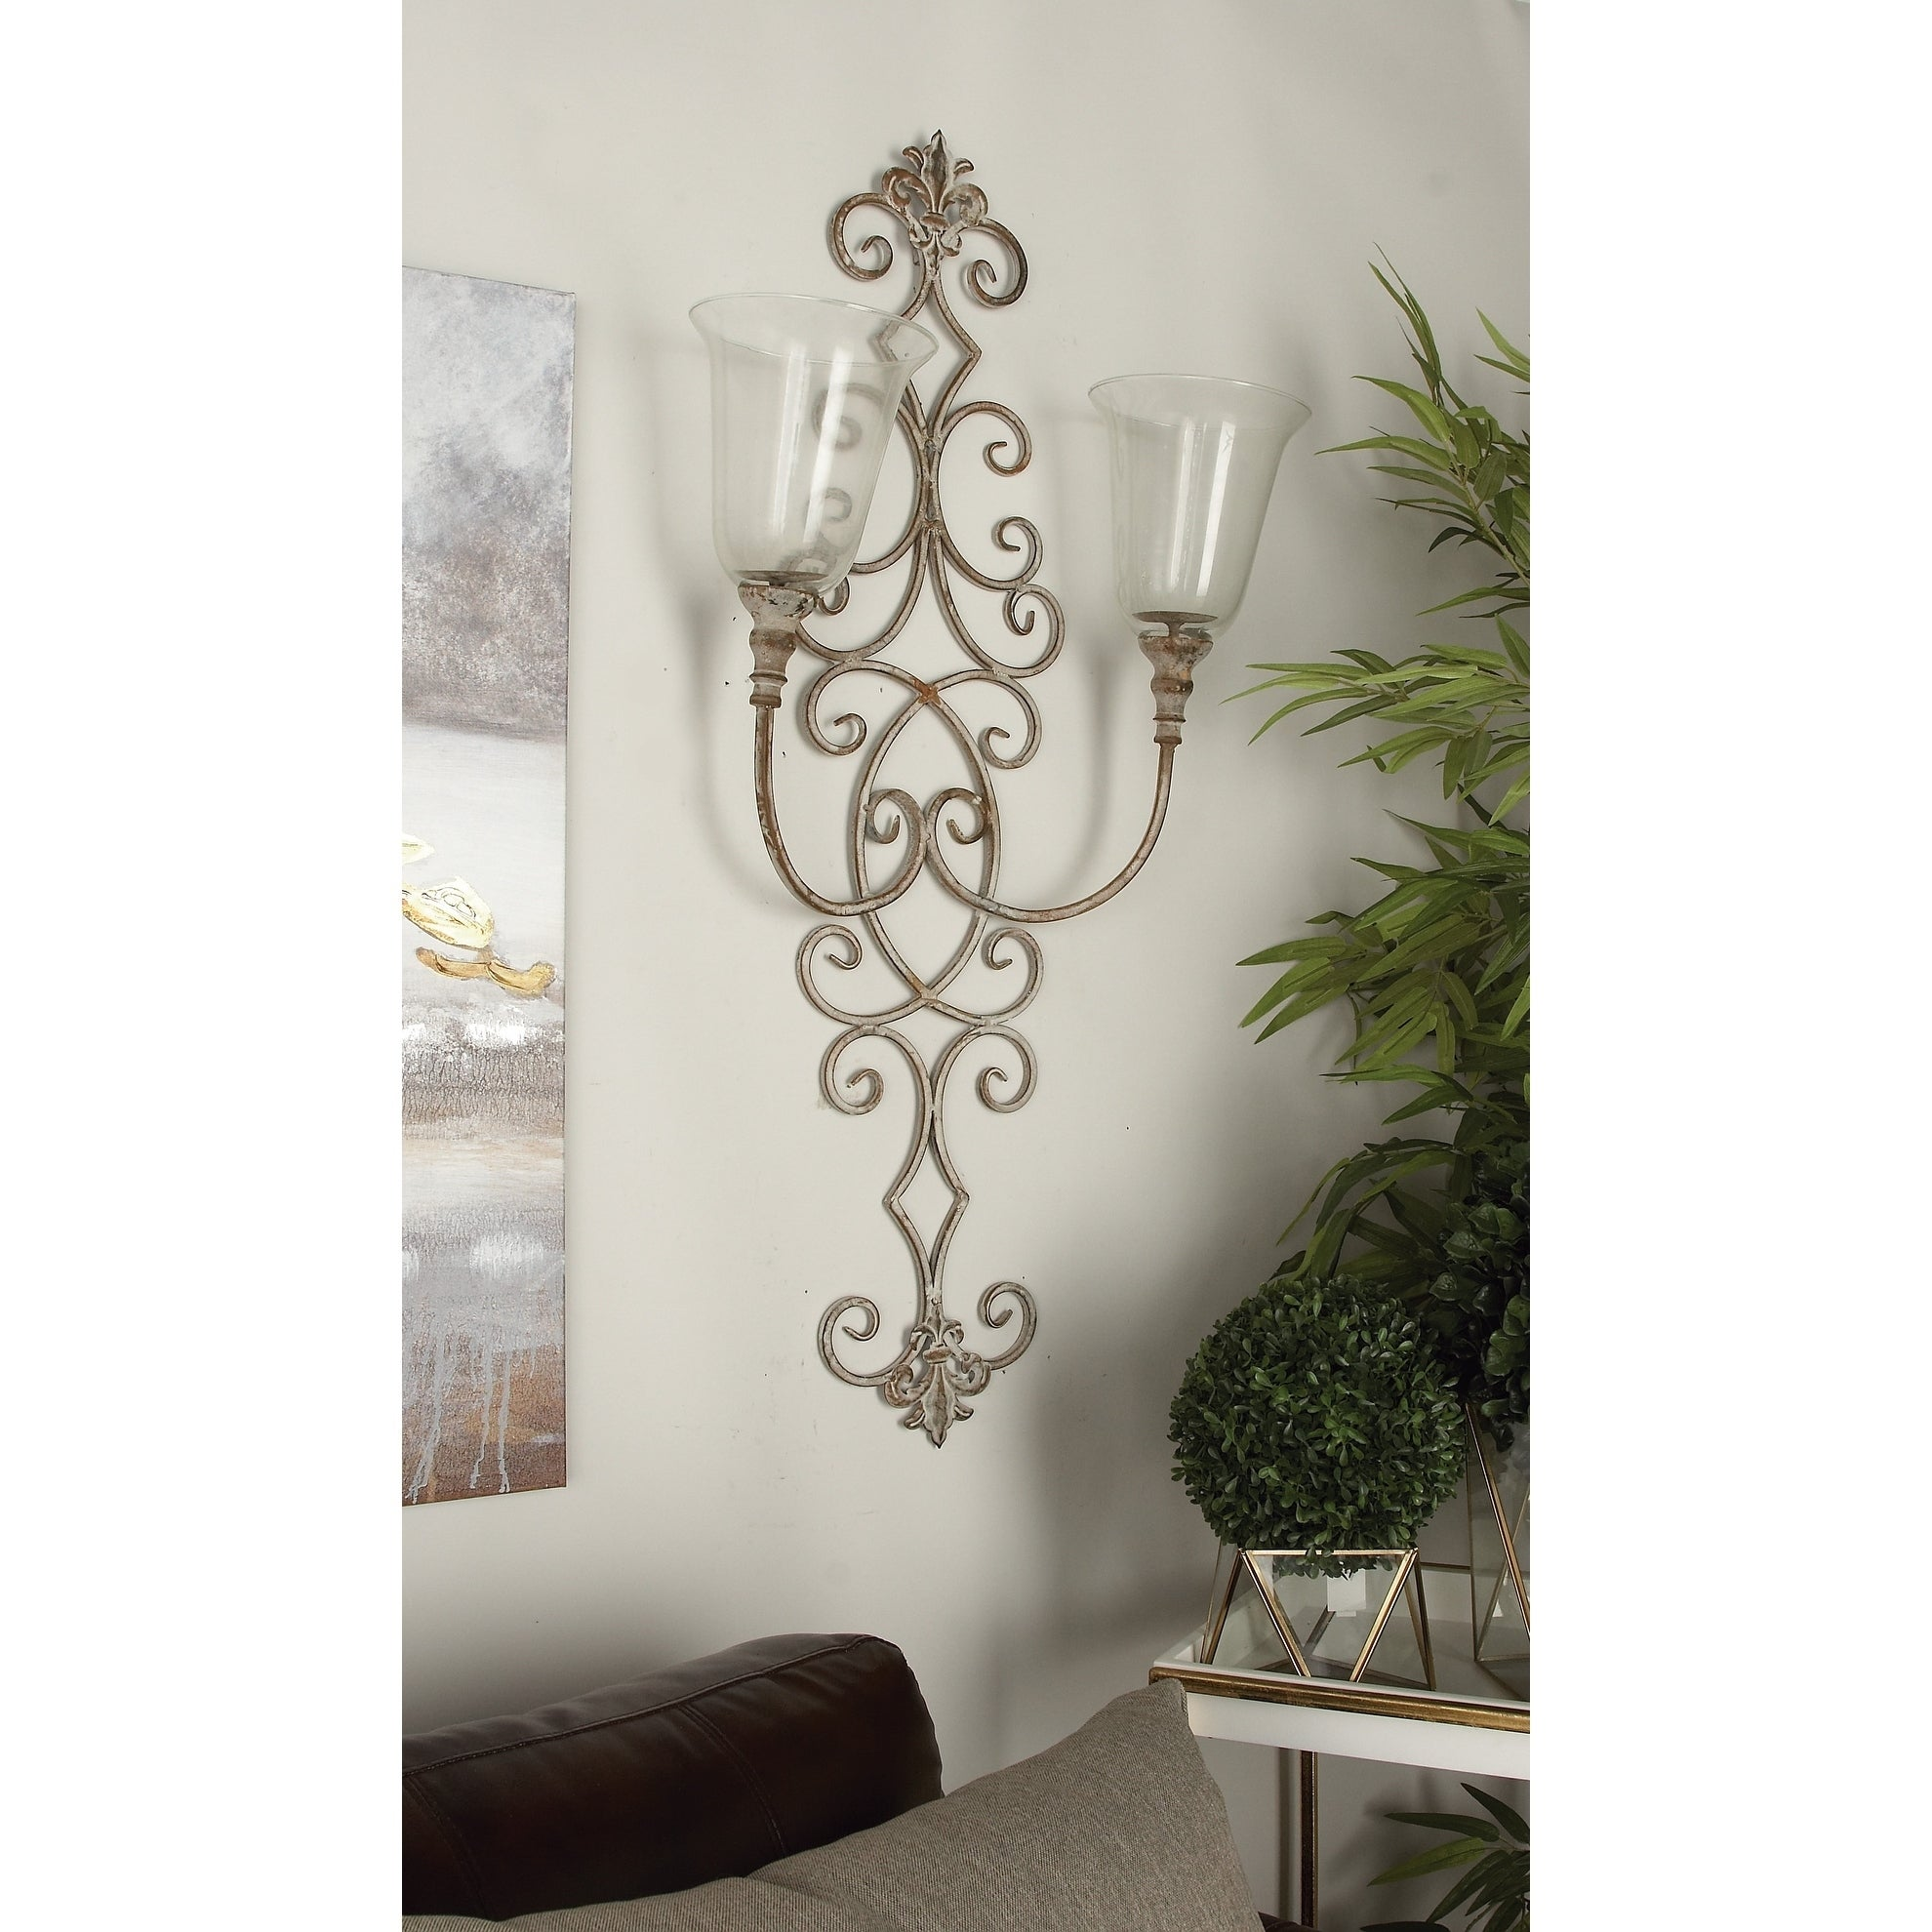 Rustic 41 X 19 Inch Scrolled Iron Wall Candle Sconce By Studio 350 Overstock 21181189